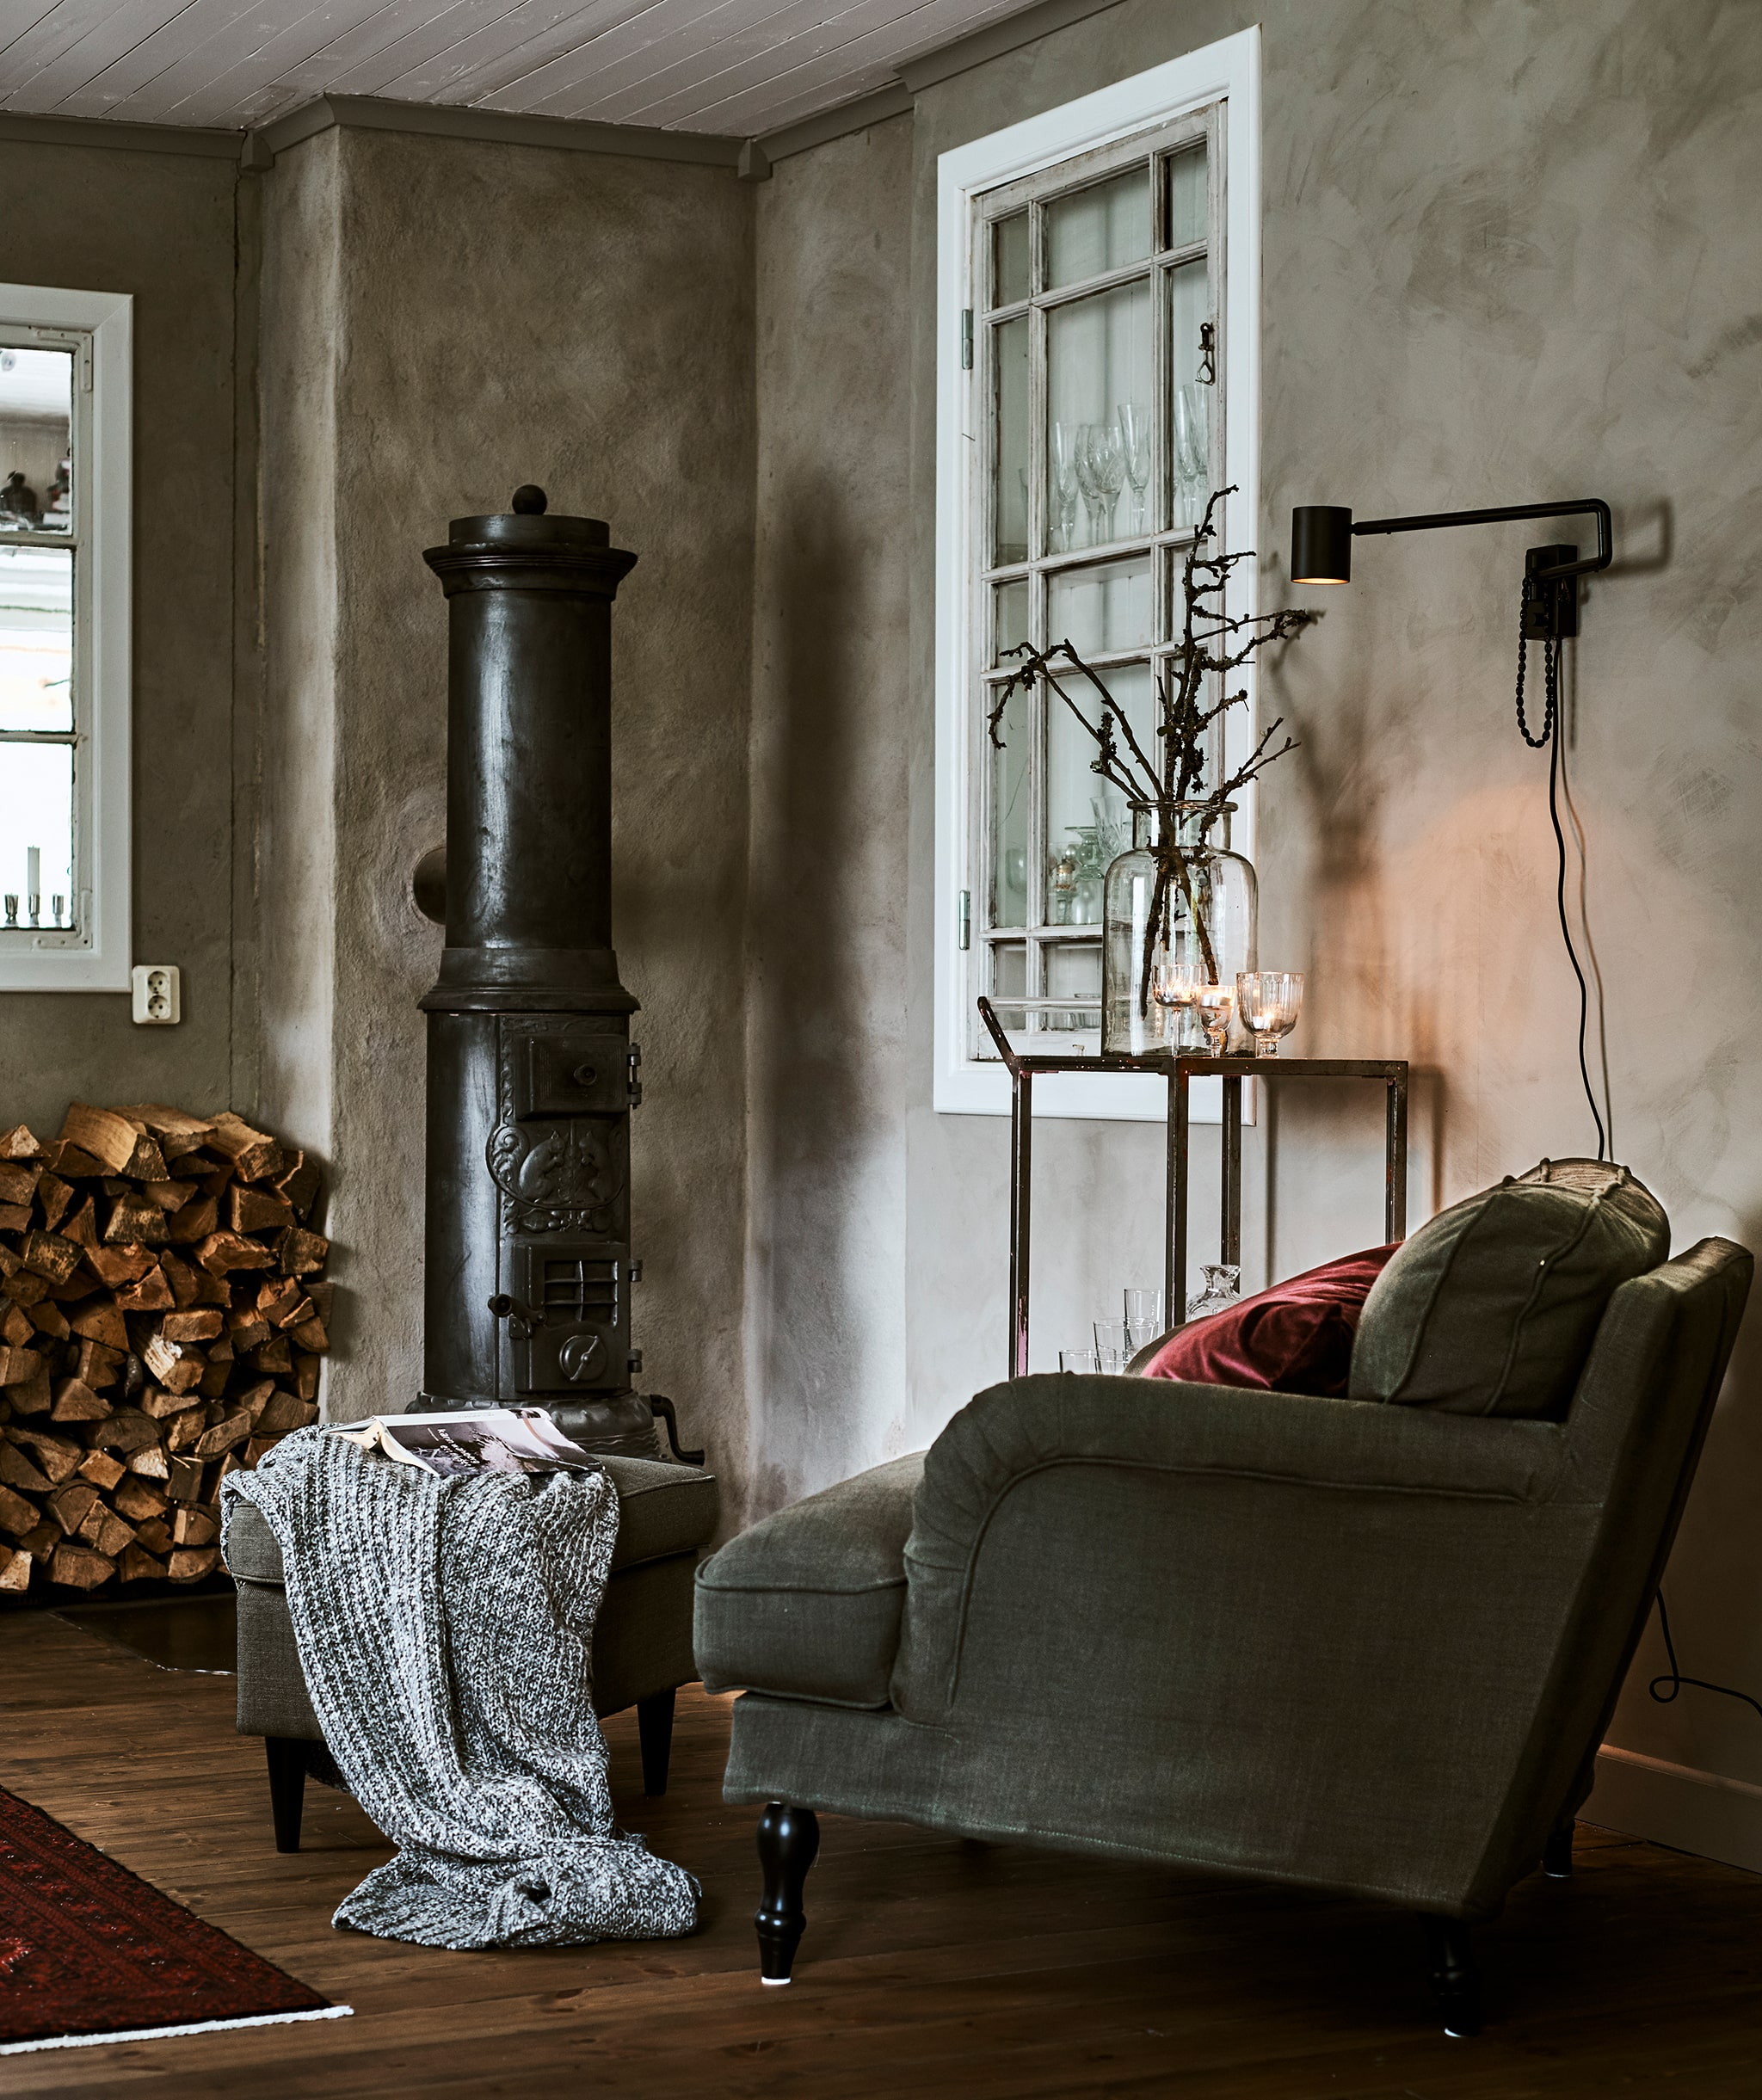 Corner of a grey-walled room with a green armchair, red cushion and footstool next to wood-burning stove and wood pile.